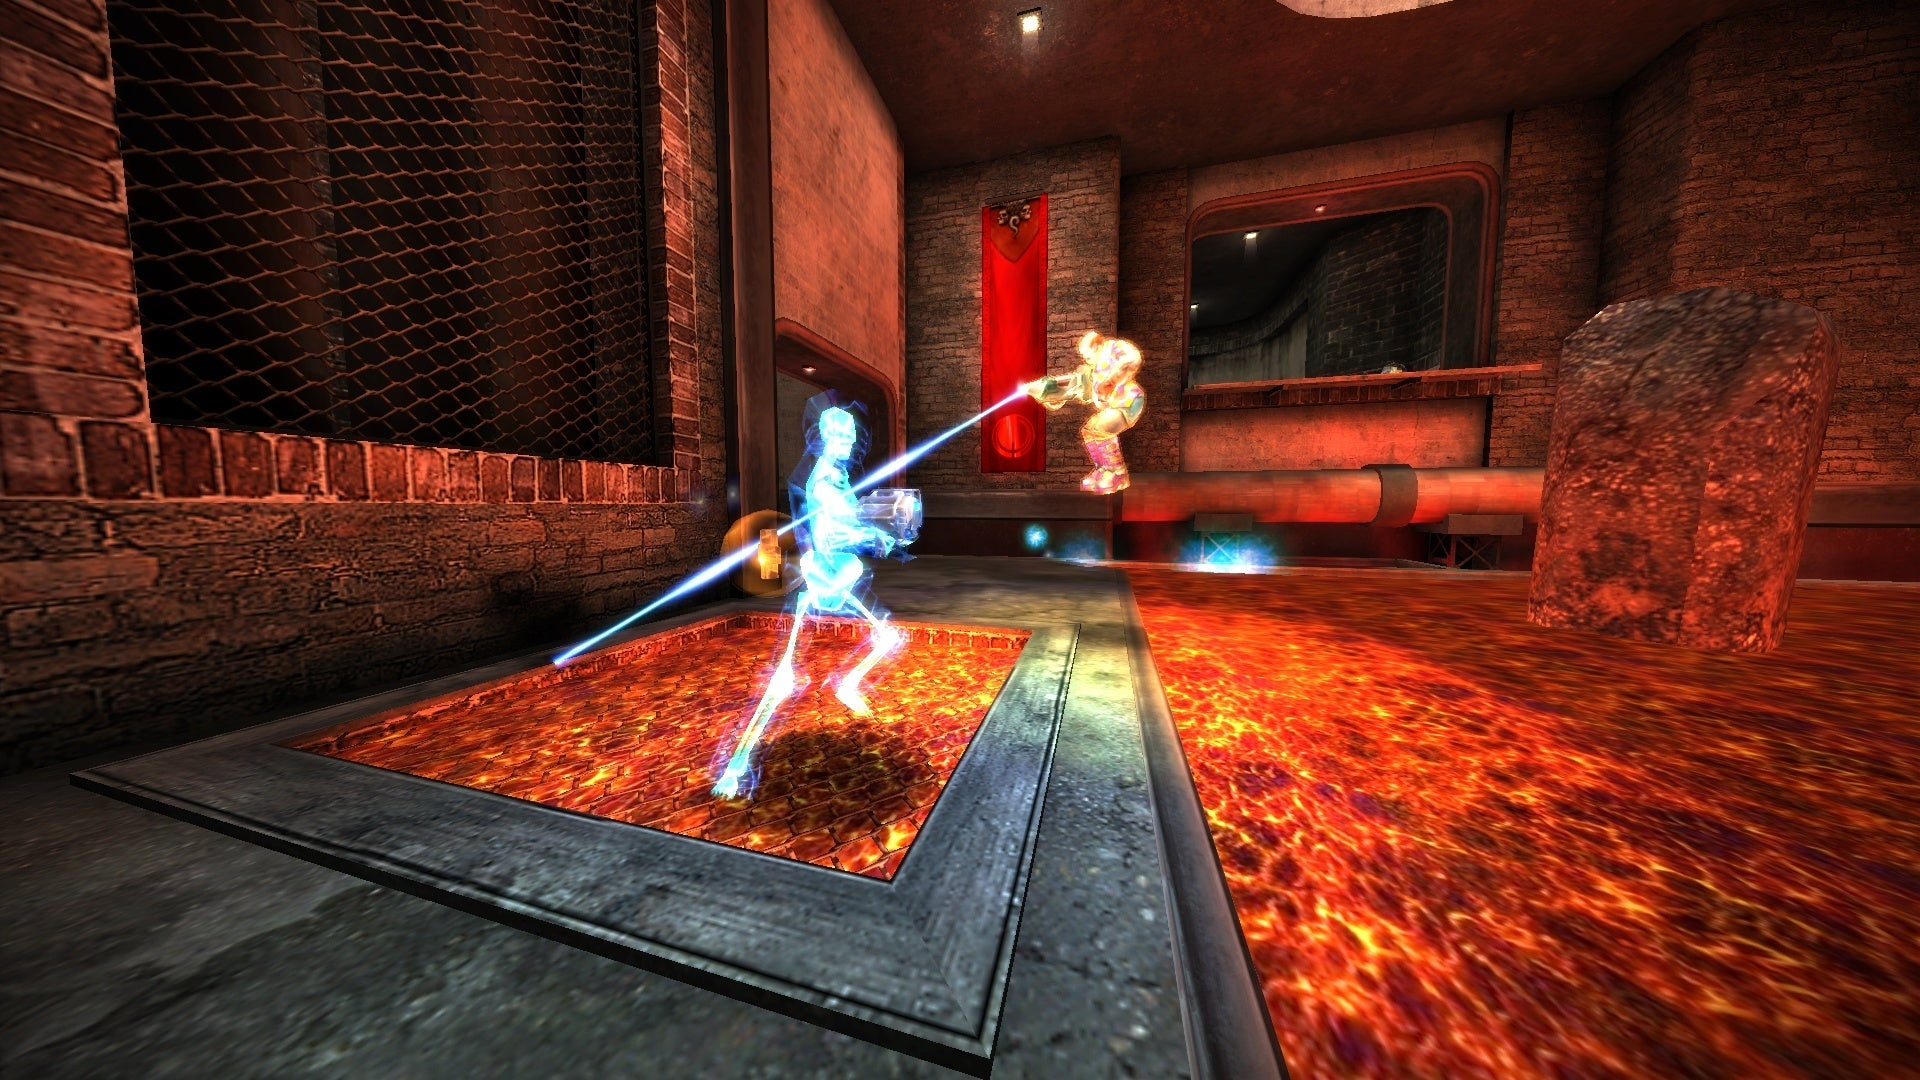 Old-school PC games: How EverQuest, RuneScape, and Quake stood the